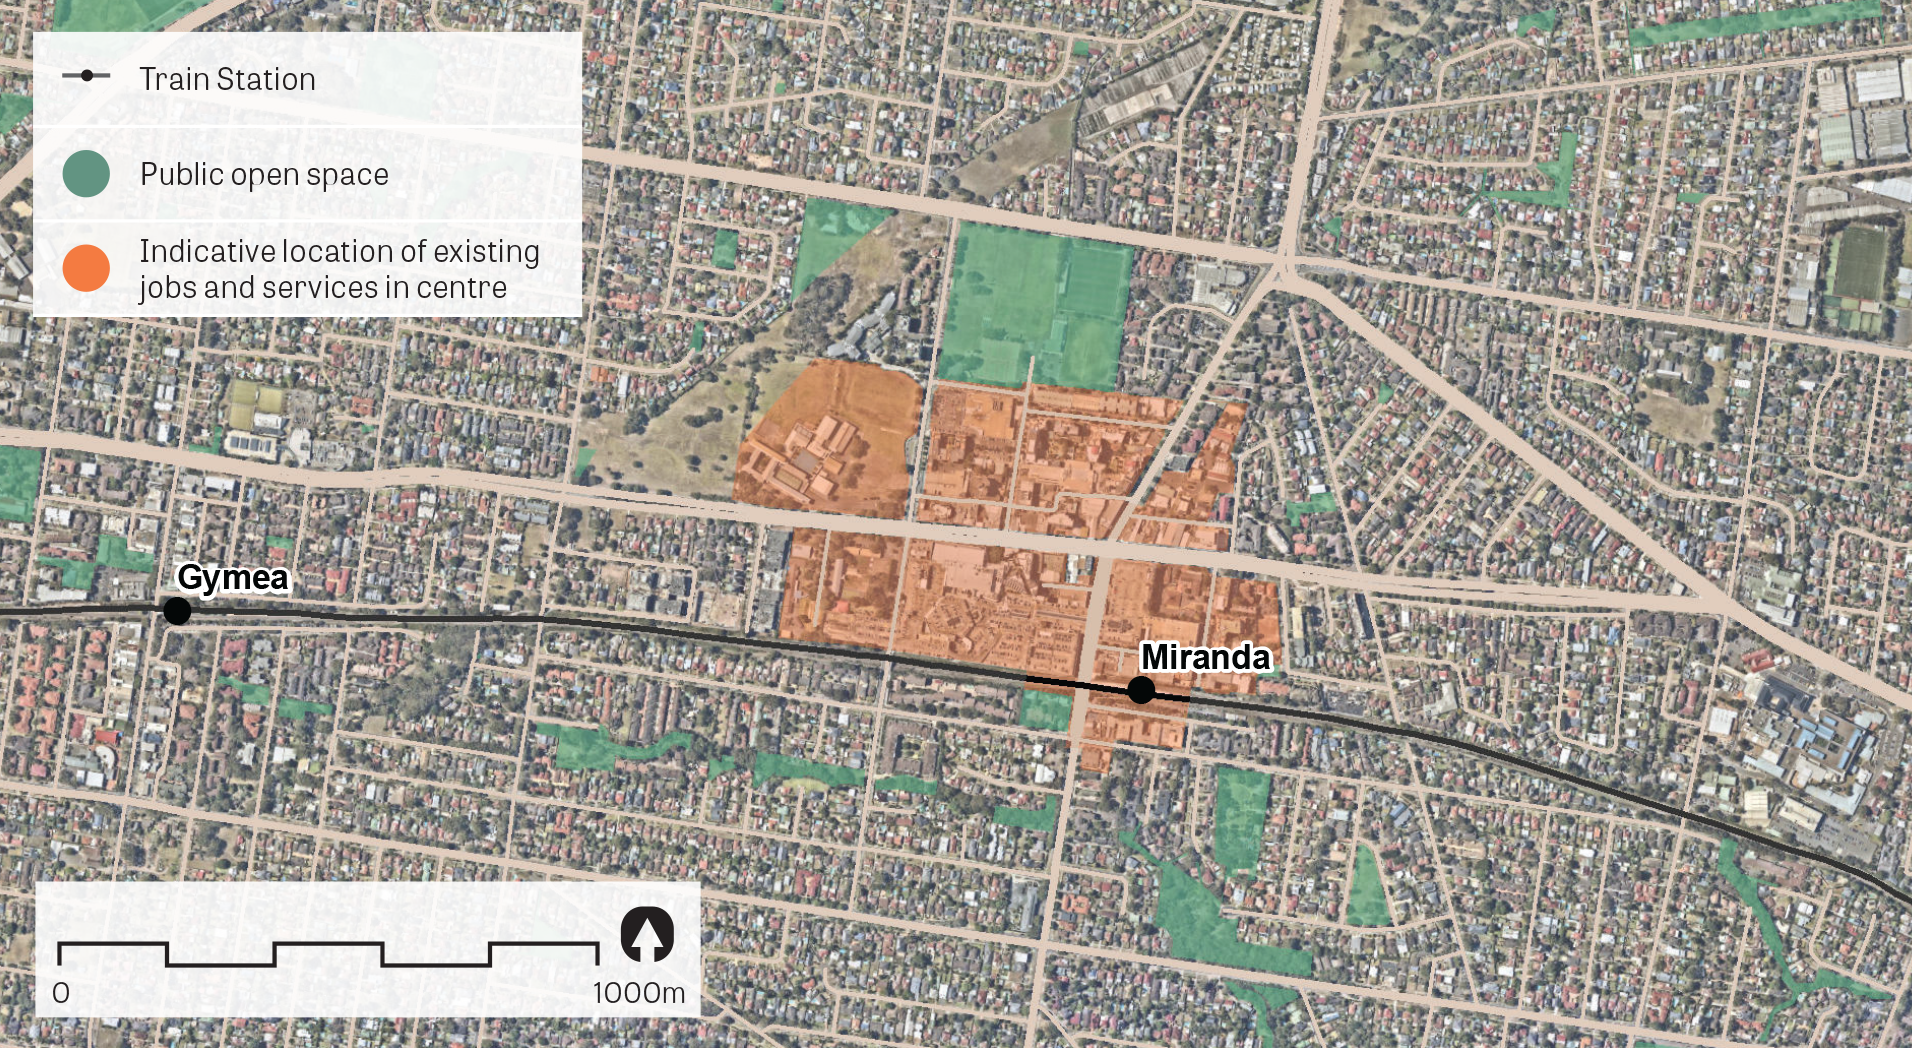 An aerial image of Miranda showing the principal areas containing jobs and services.